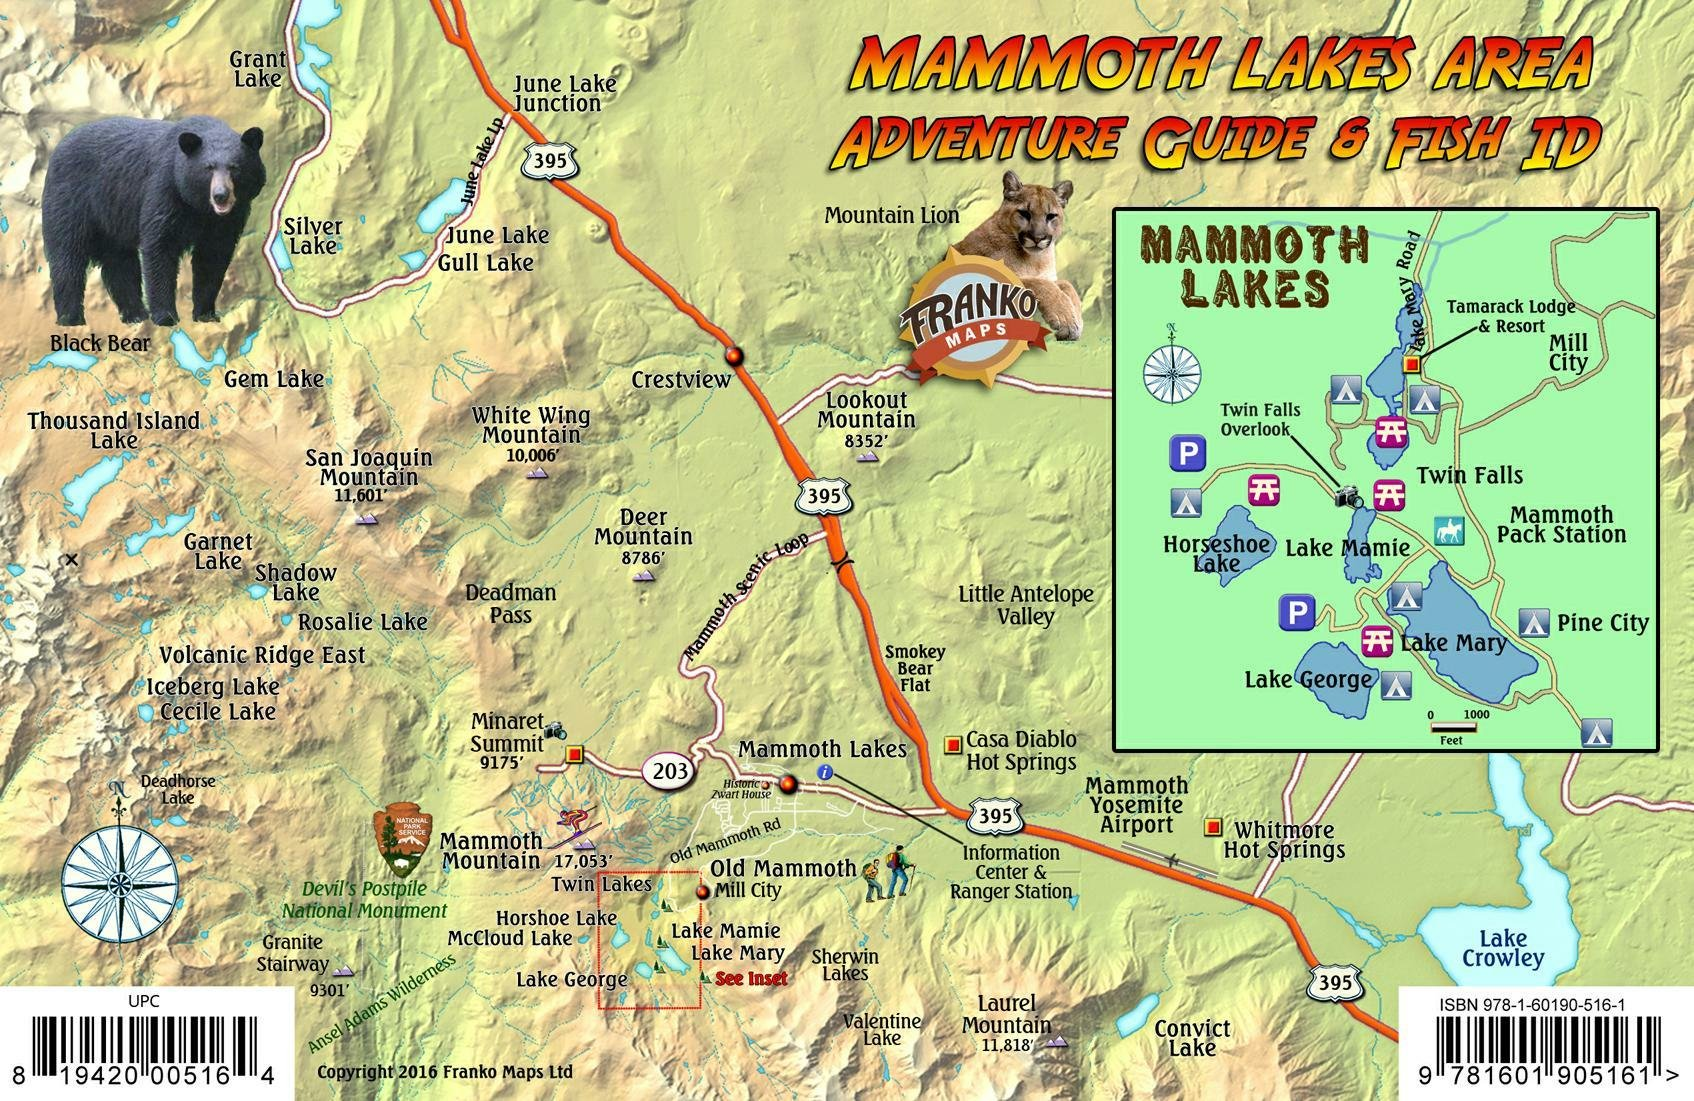 Mammoth Lakes California Map & Fish Guide Franko Maps ... on chico hot springs map, pagosa hot springs map, granite hot springs map, yellowstone national park hiking trails map, natural hot springs map, deep creek hot springs map, stanley hot springs map, yellowstone hot springs map, palm springs hot springs map, nevada hot springs map, gold strike hot springs map, diamond fork hot springs map, convict lake campground map, bishop hot springs map, sol duc hot springs map, desert hot springs street map, great lakes topo map, verde hot springs map, hot springs california map, goldmyer hot springs map,